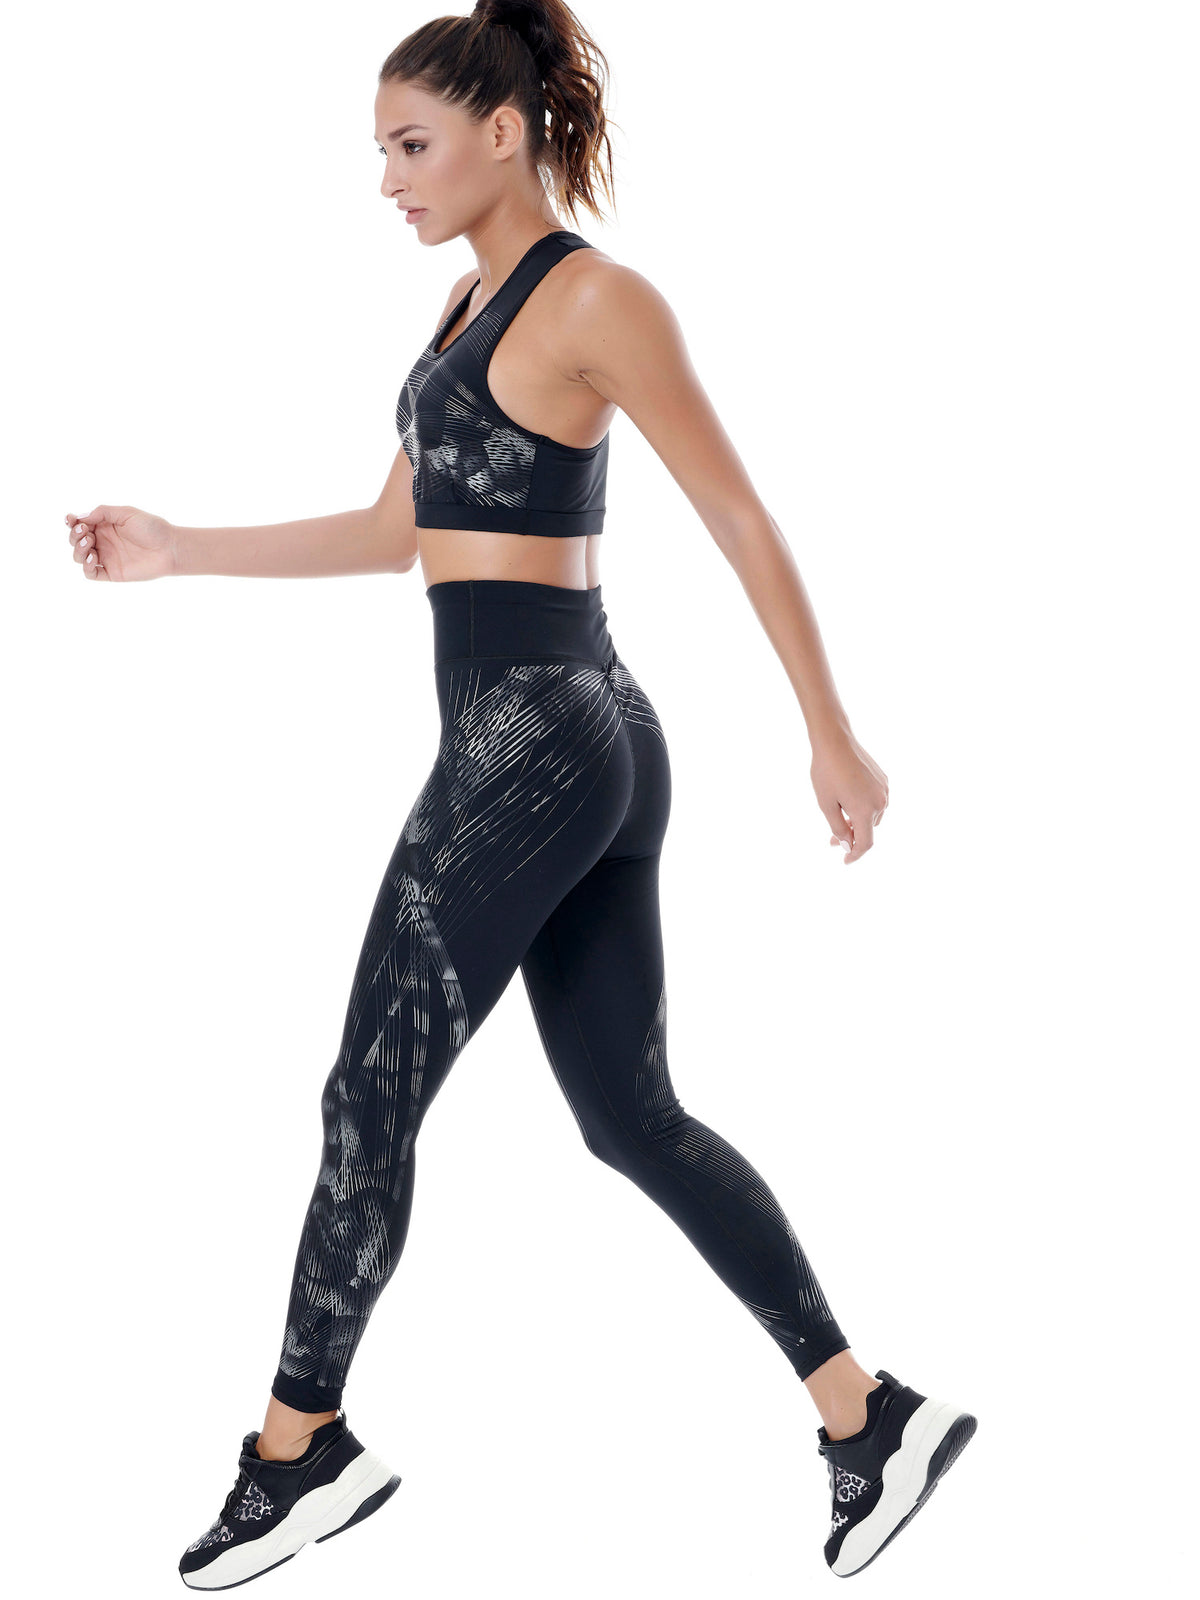 GLOBETROTTER SET (LEGGINGS & TOP) - BLACK